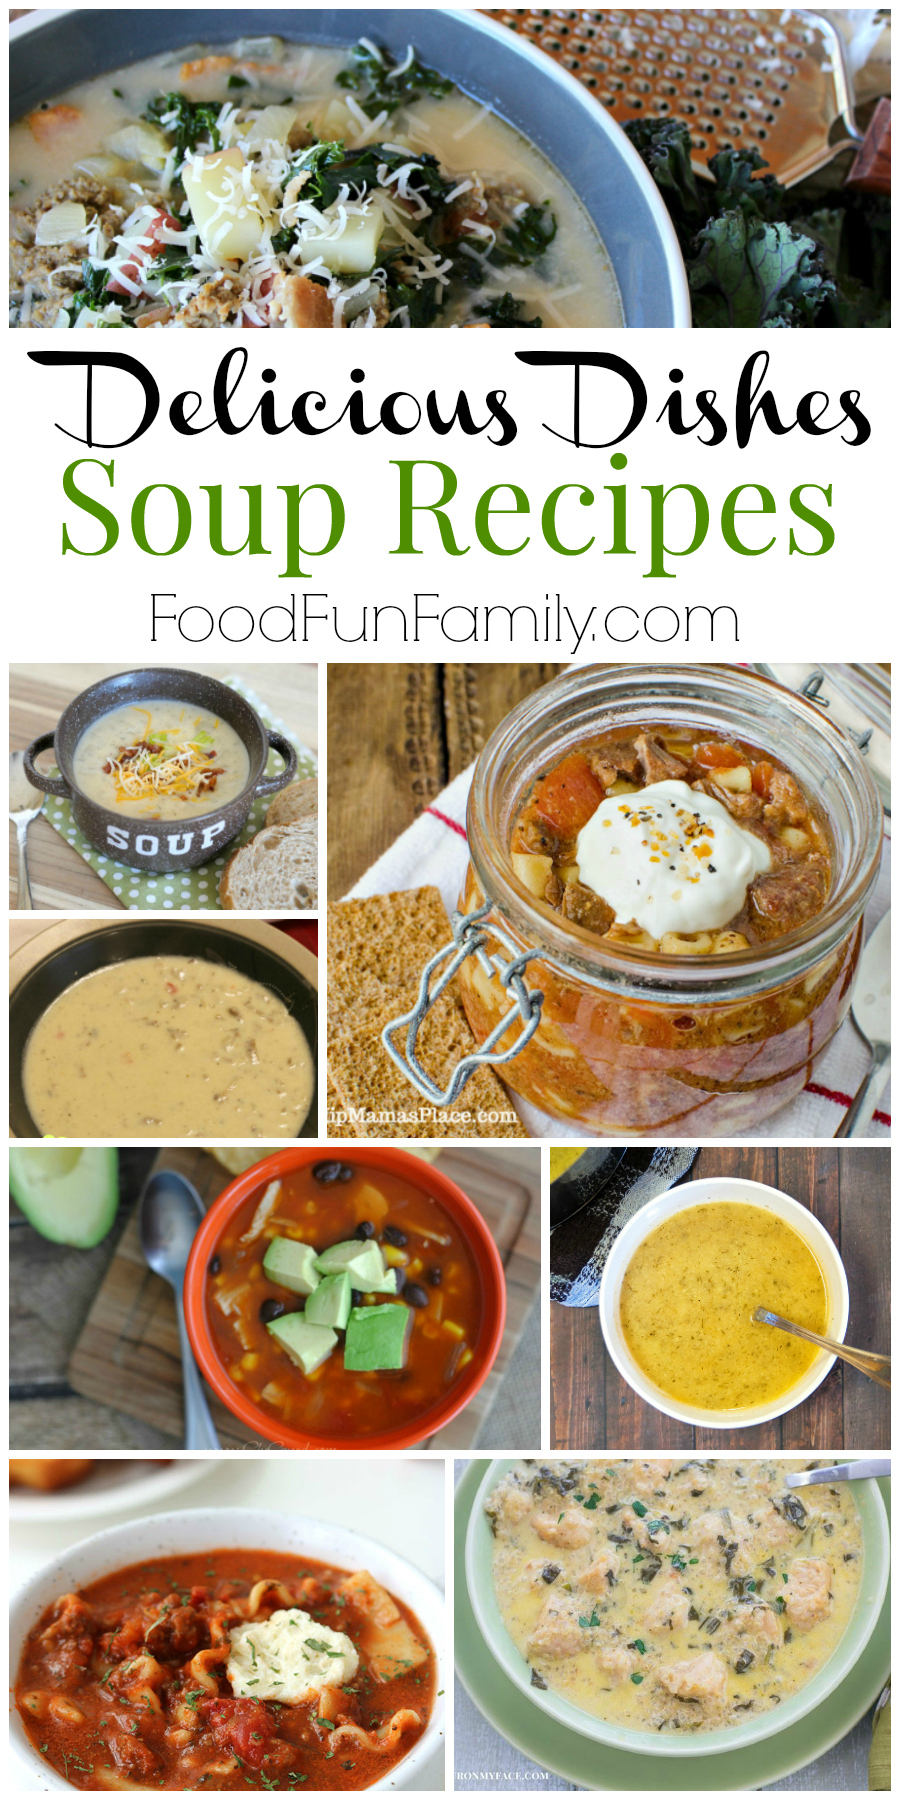 Favorite Soup Recipes  - Delicious Dishes Recipes Party at Food Fun Family